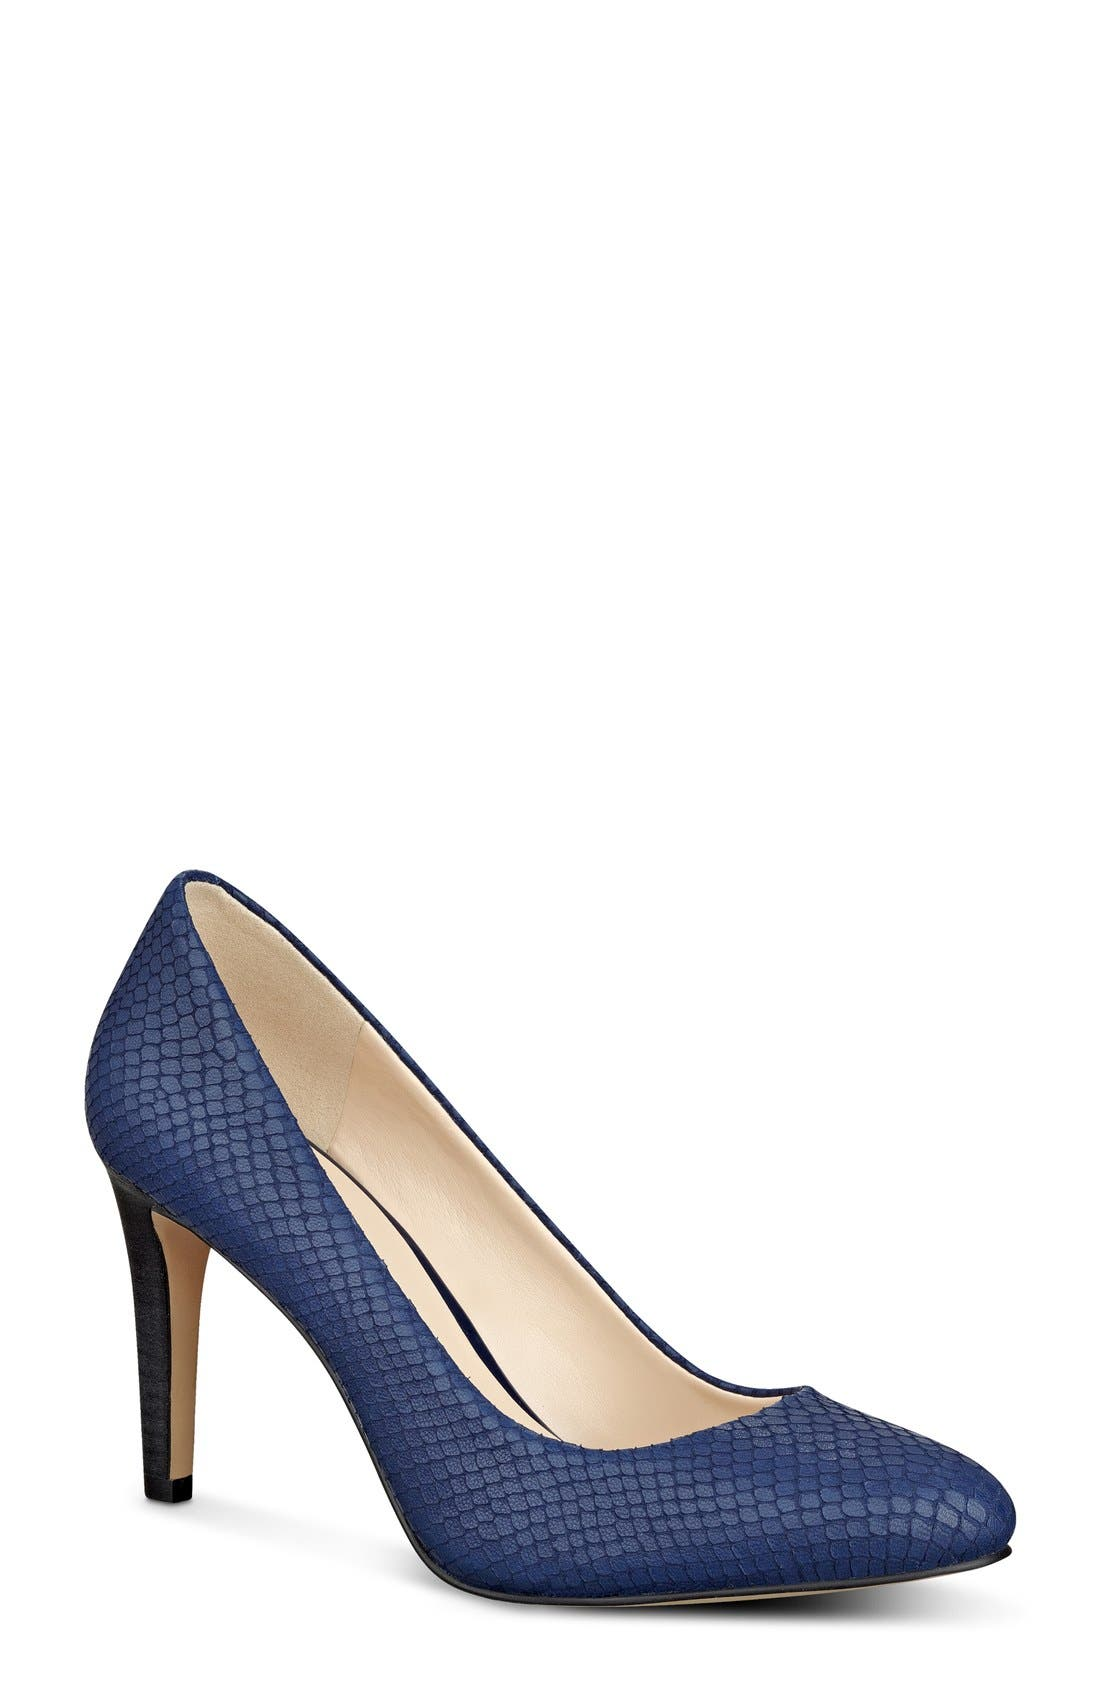 Alternate Image 1 Selected - Nine West 'Handjive' Almond Toe Pump (Women)